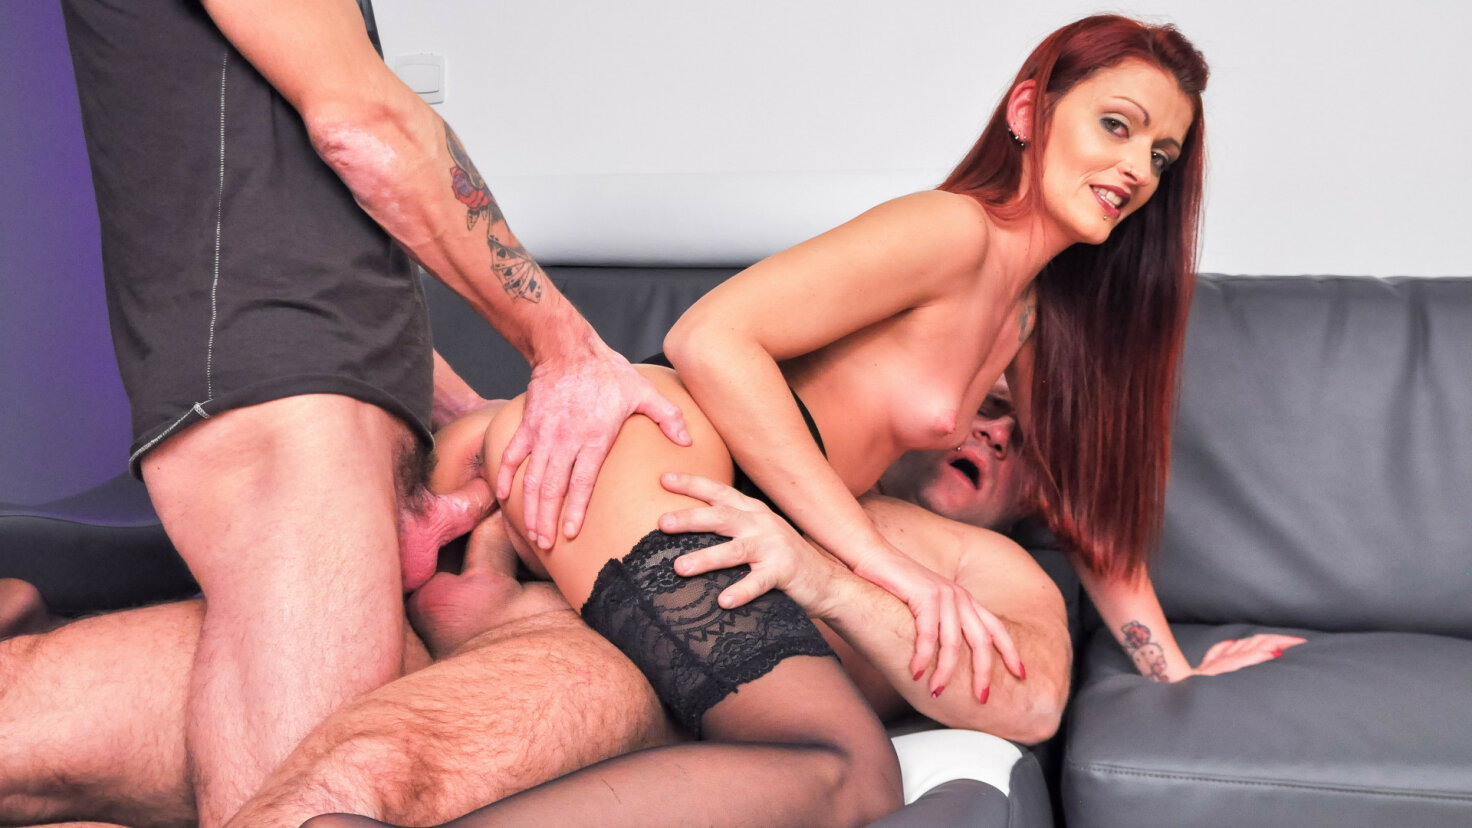 Pervy French amateur Lola Candy takes double penetration in dirty threesome